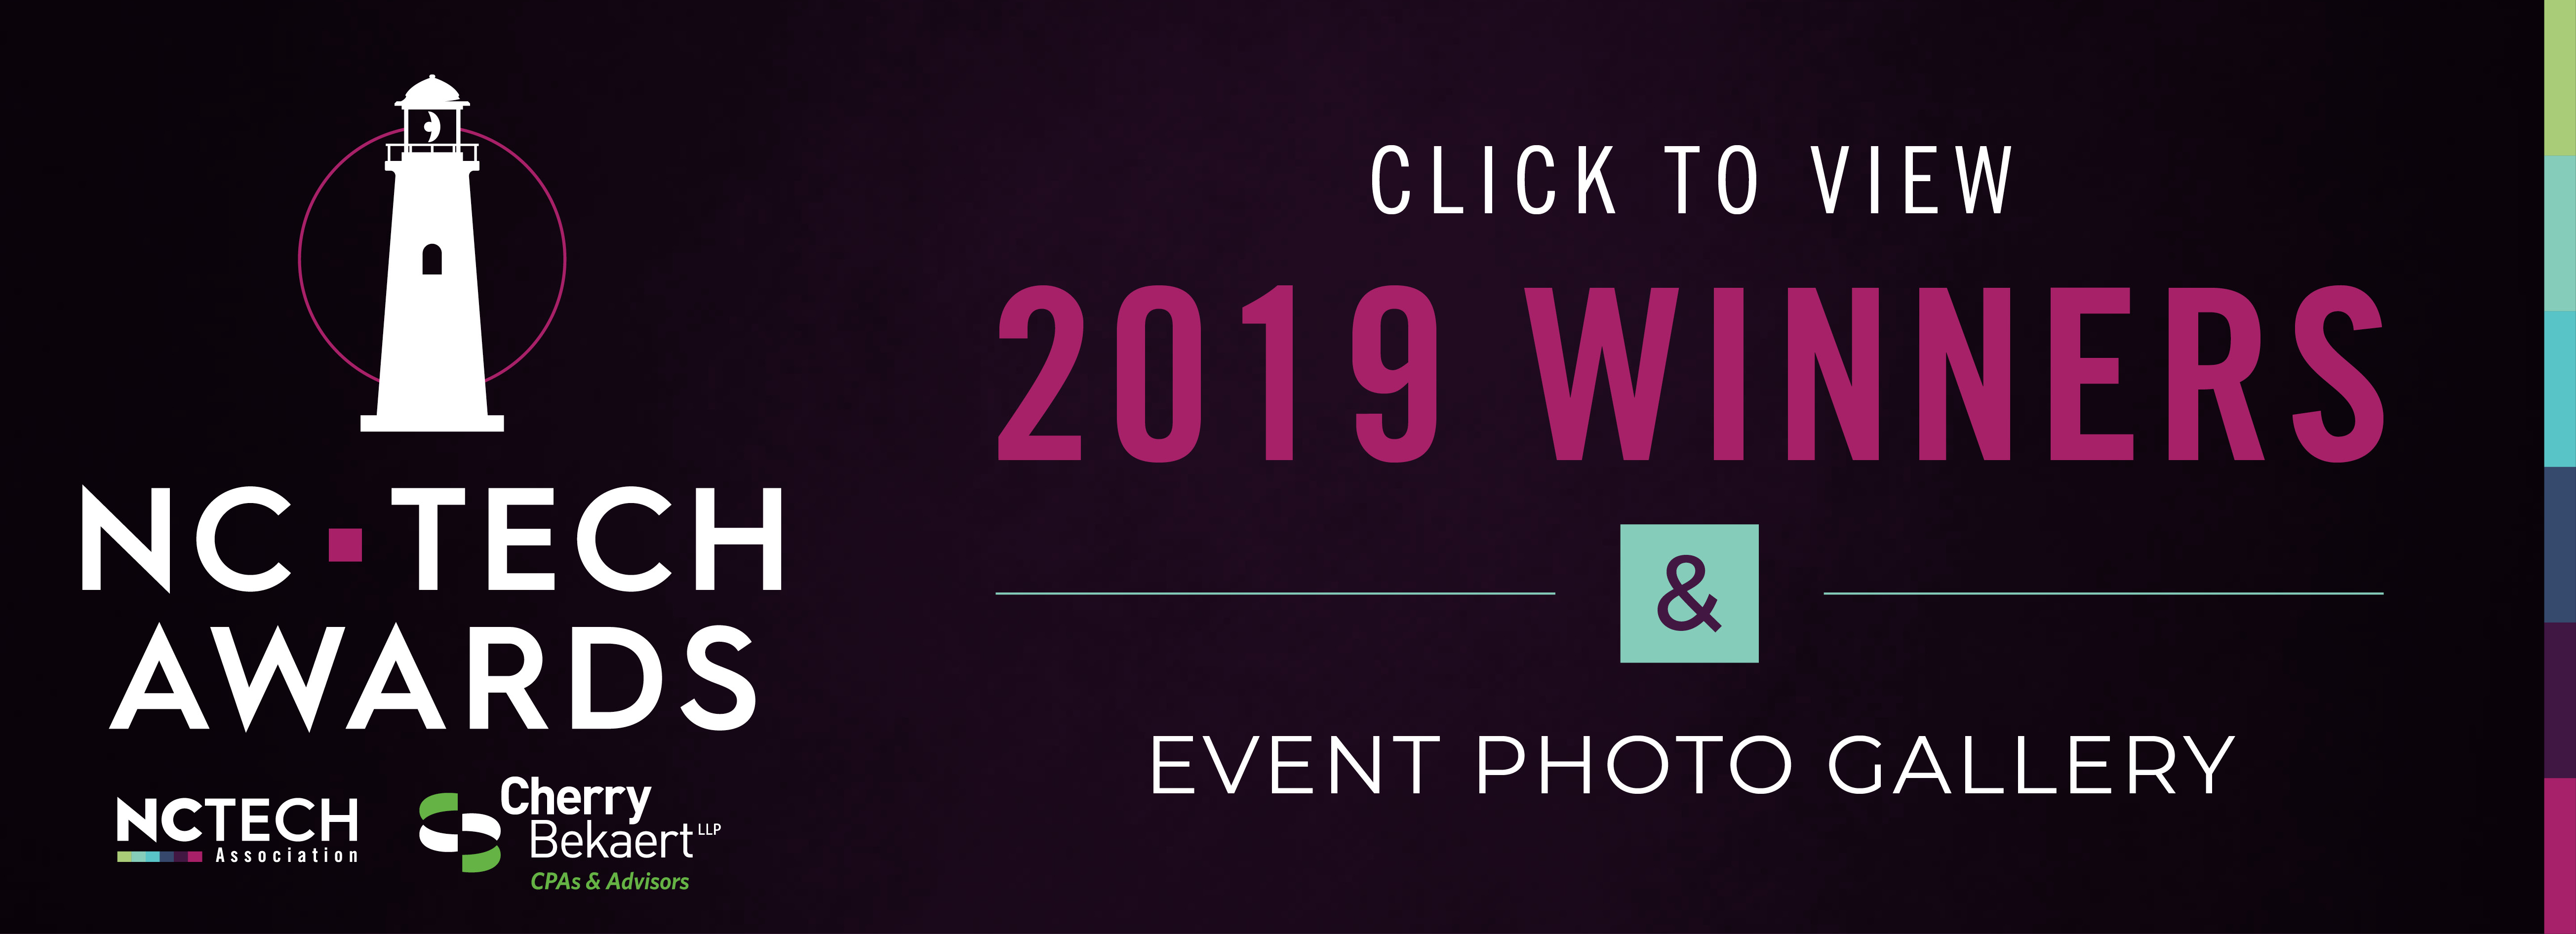 NCTechAwards-Winners-Announced-1.jpg